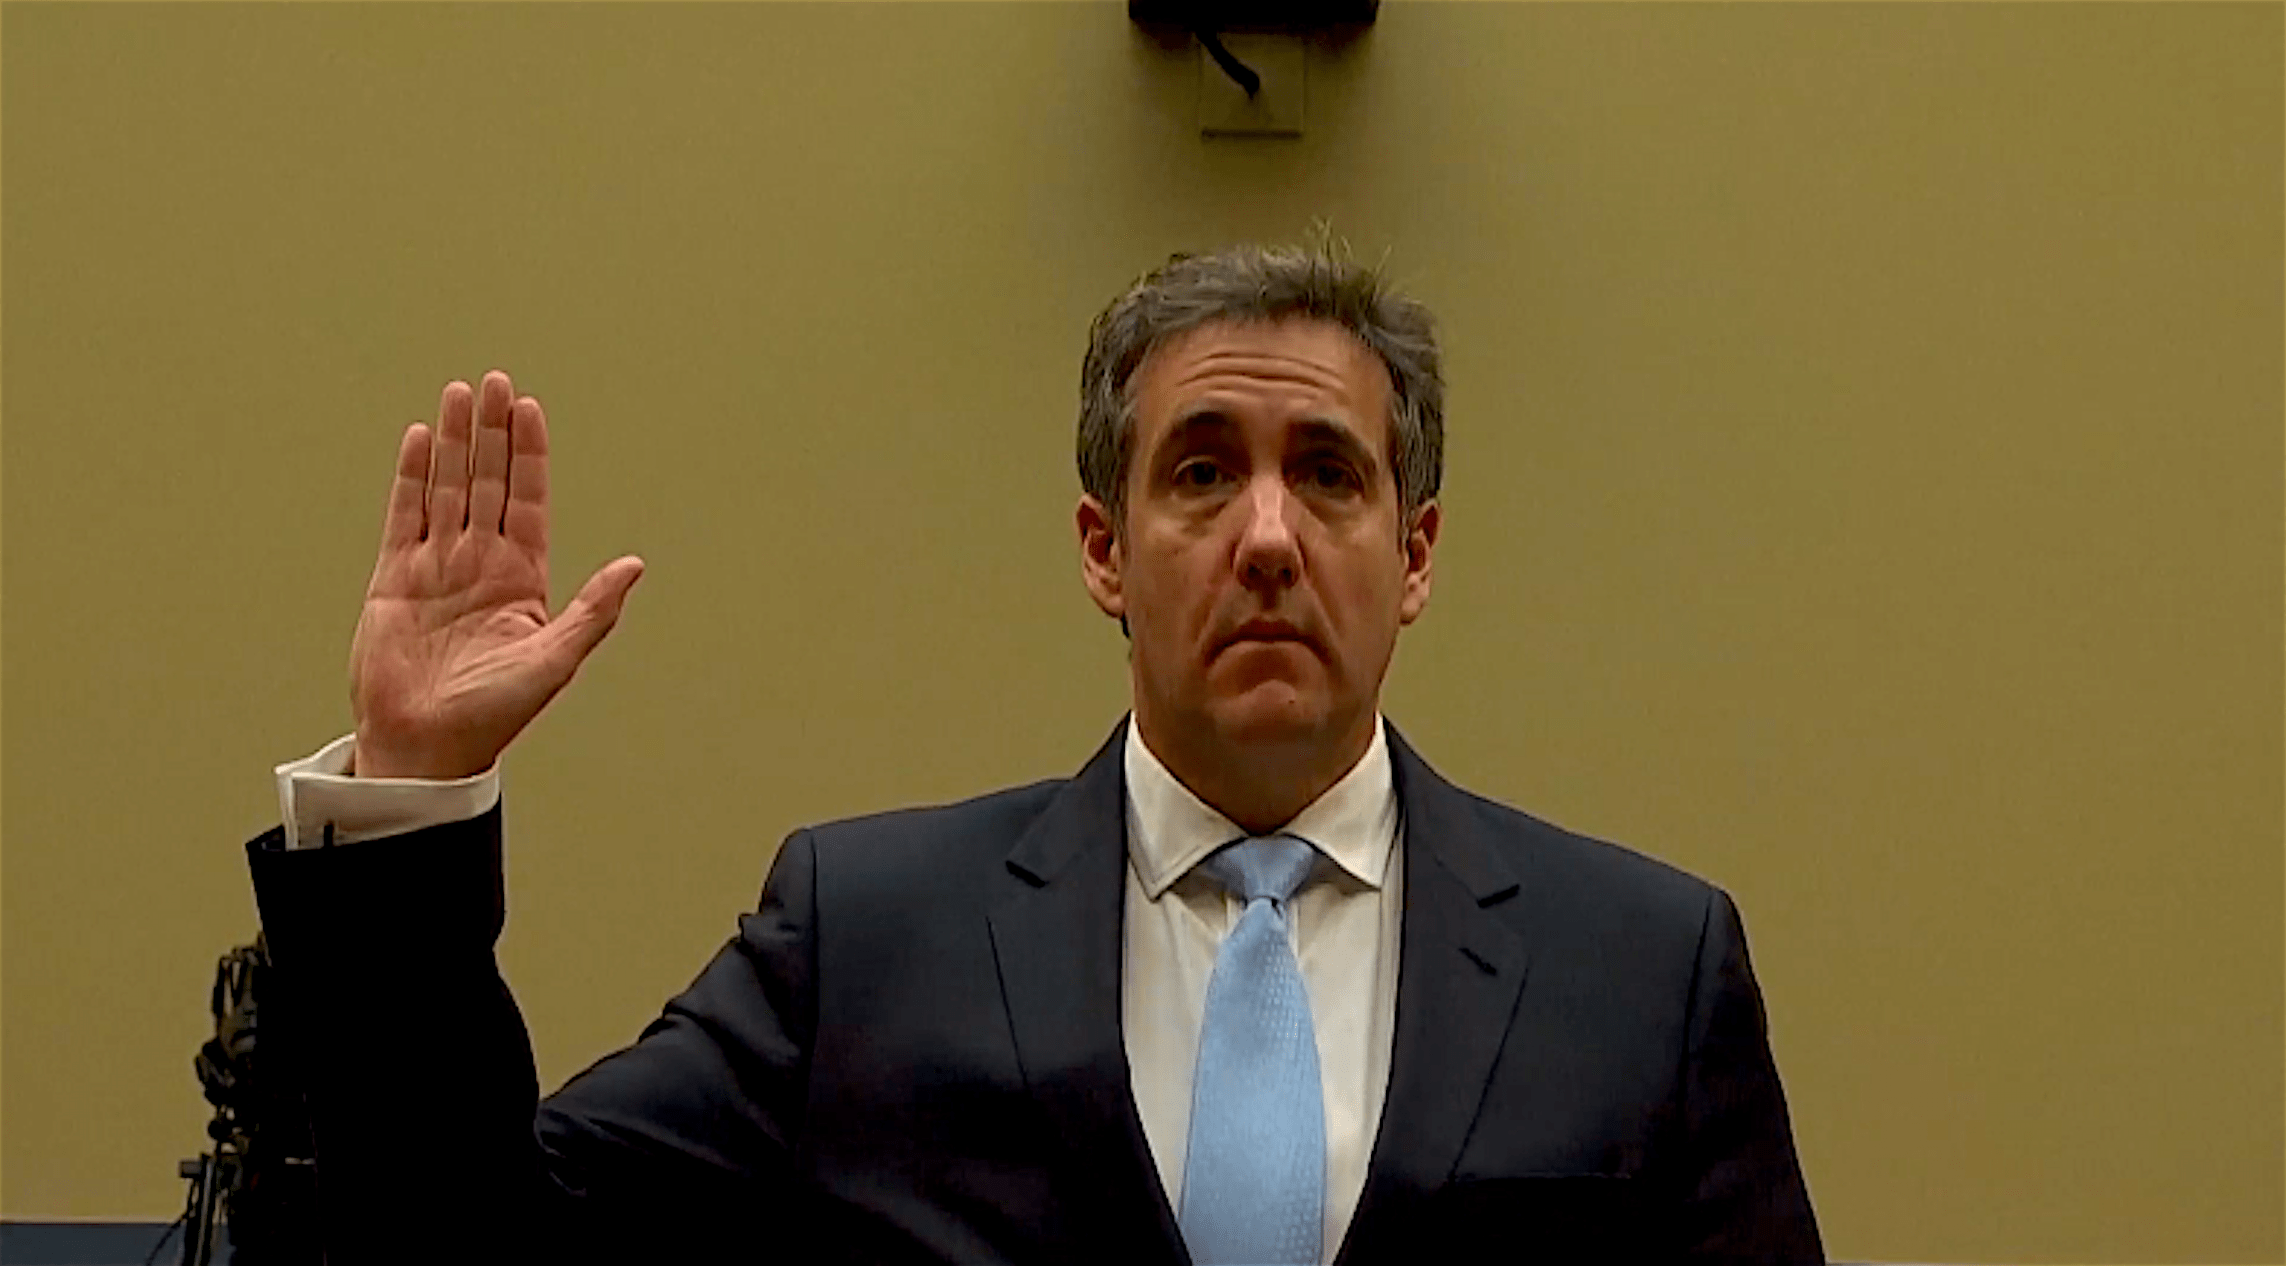 Michael Cohen, Trump's former personal laywer, taking the oath at Congress (foto The Age)